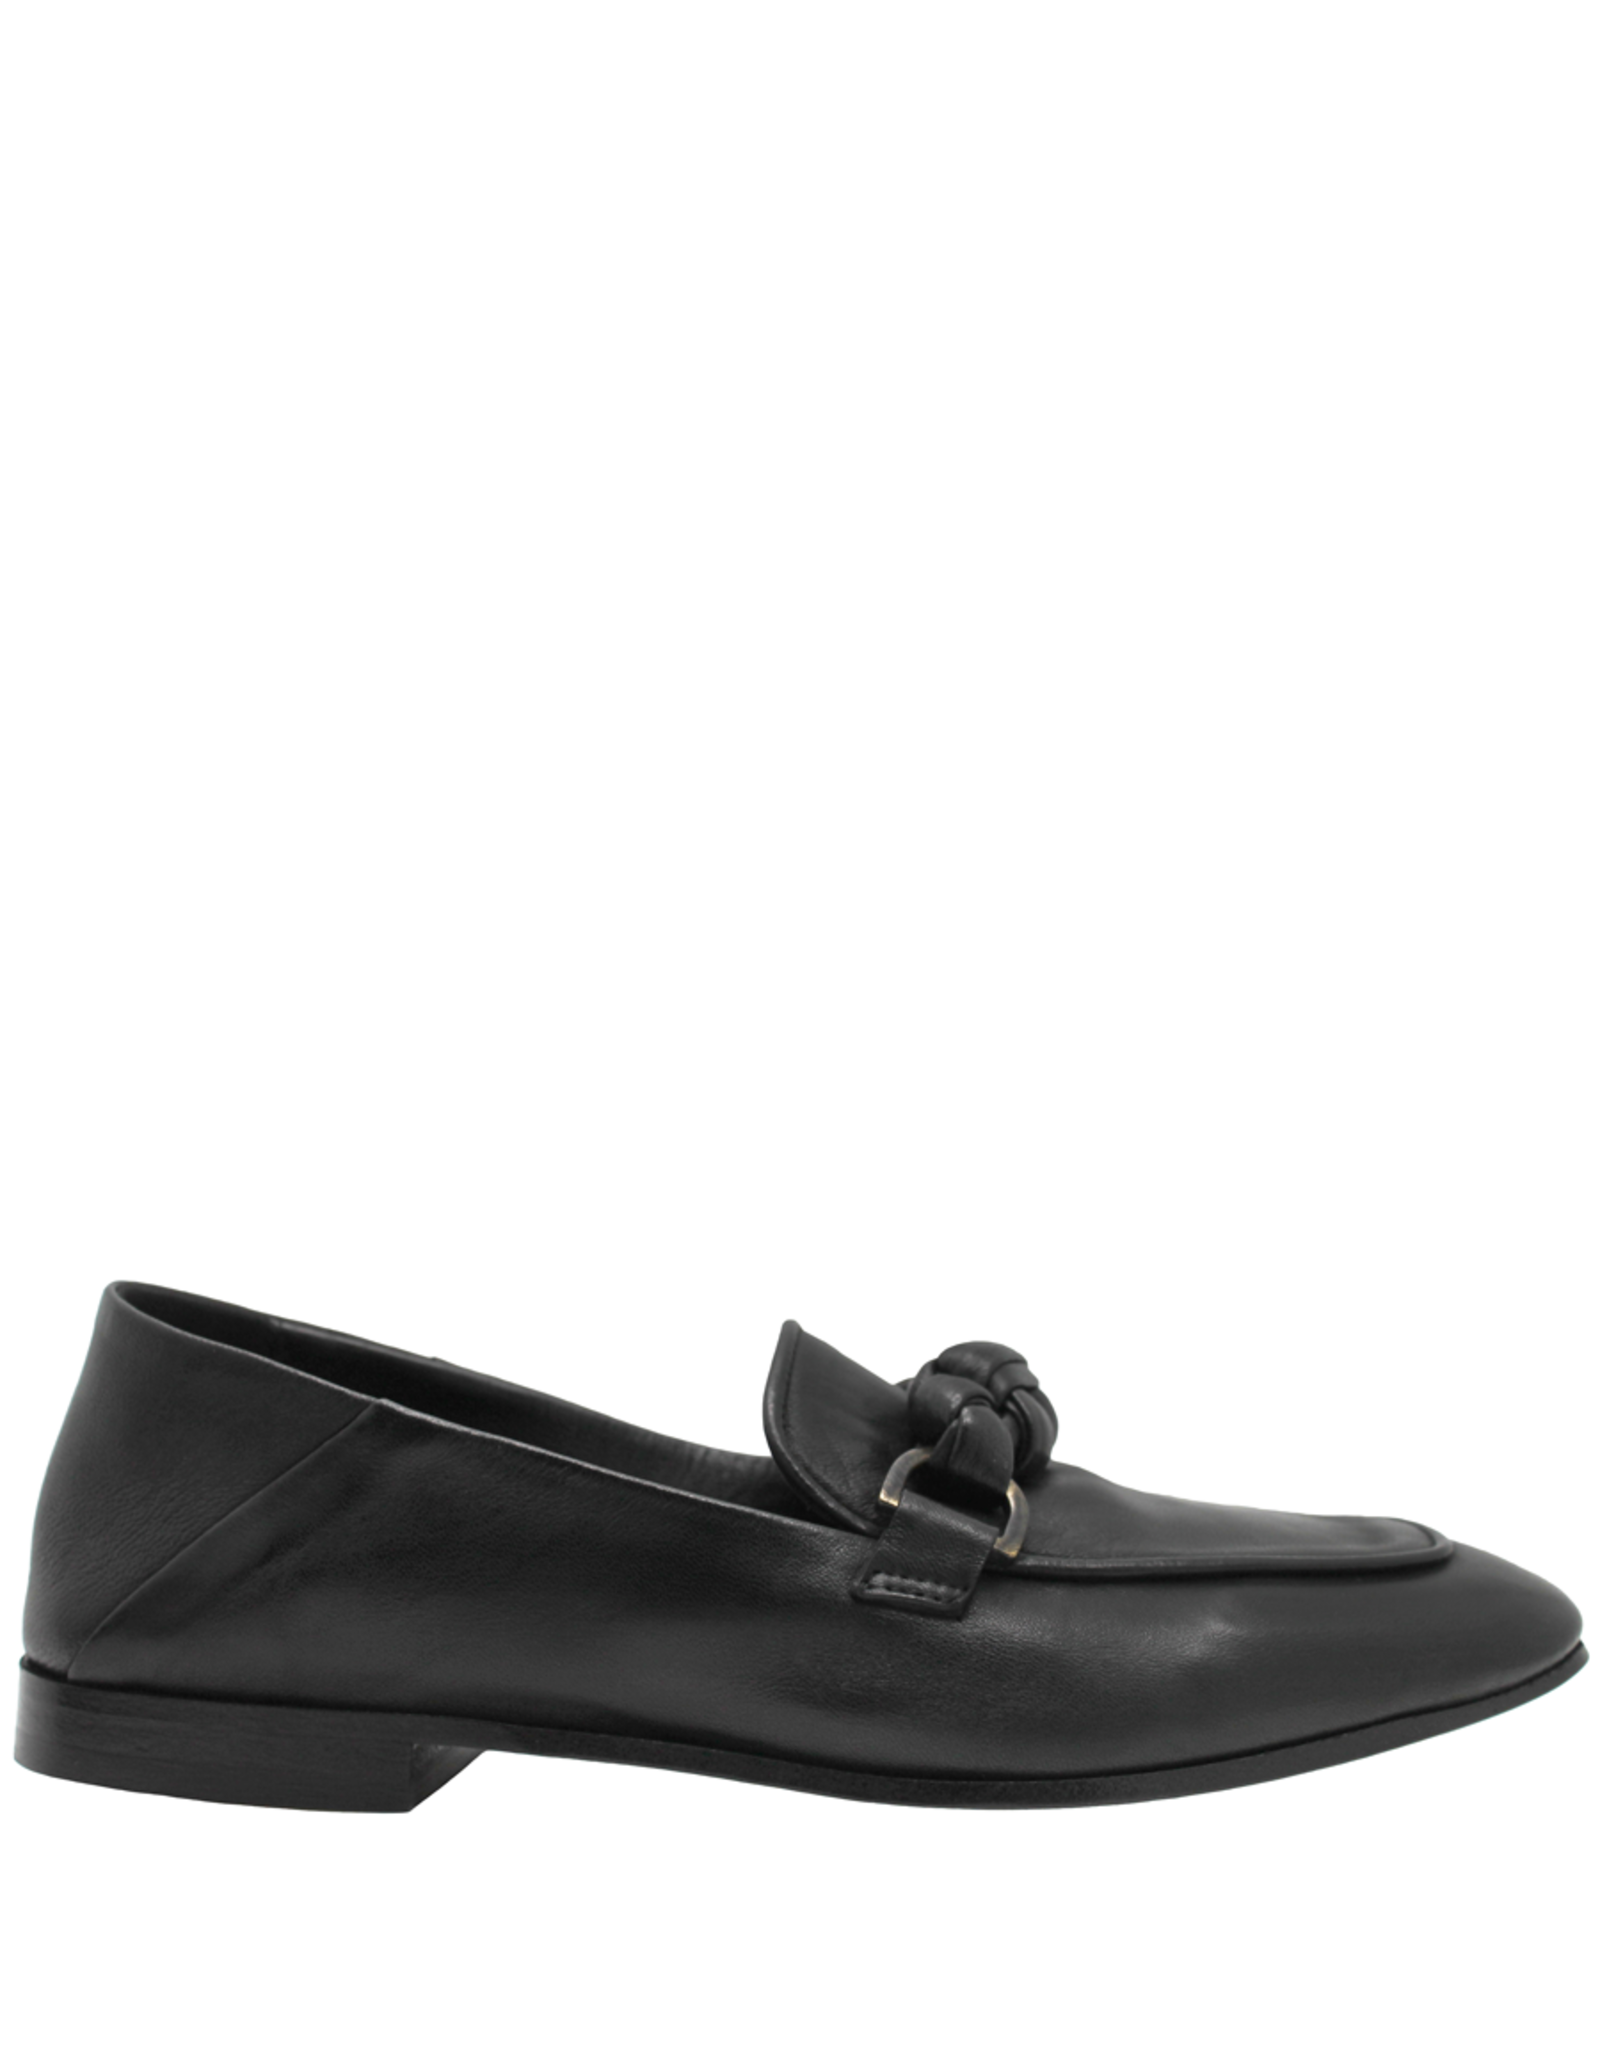 Now Now Black Braid Detail Loafer-6949